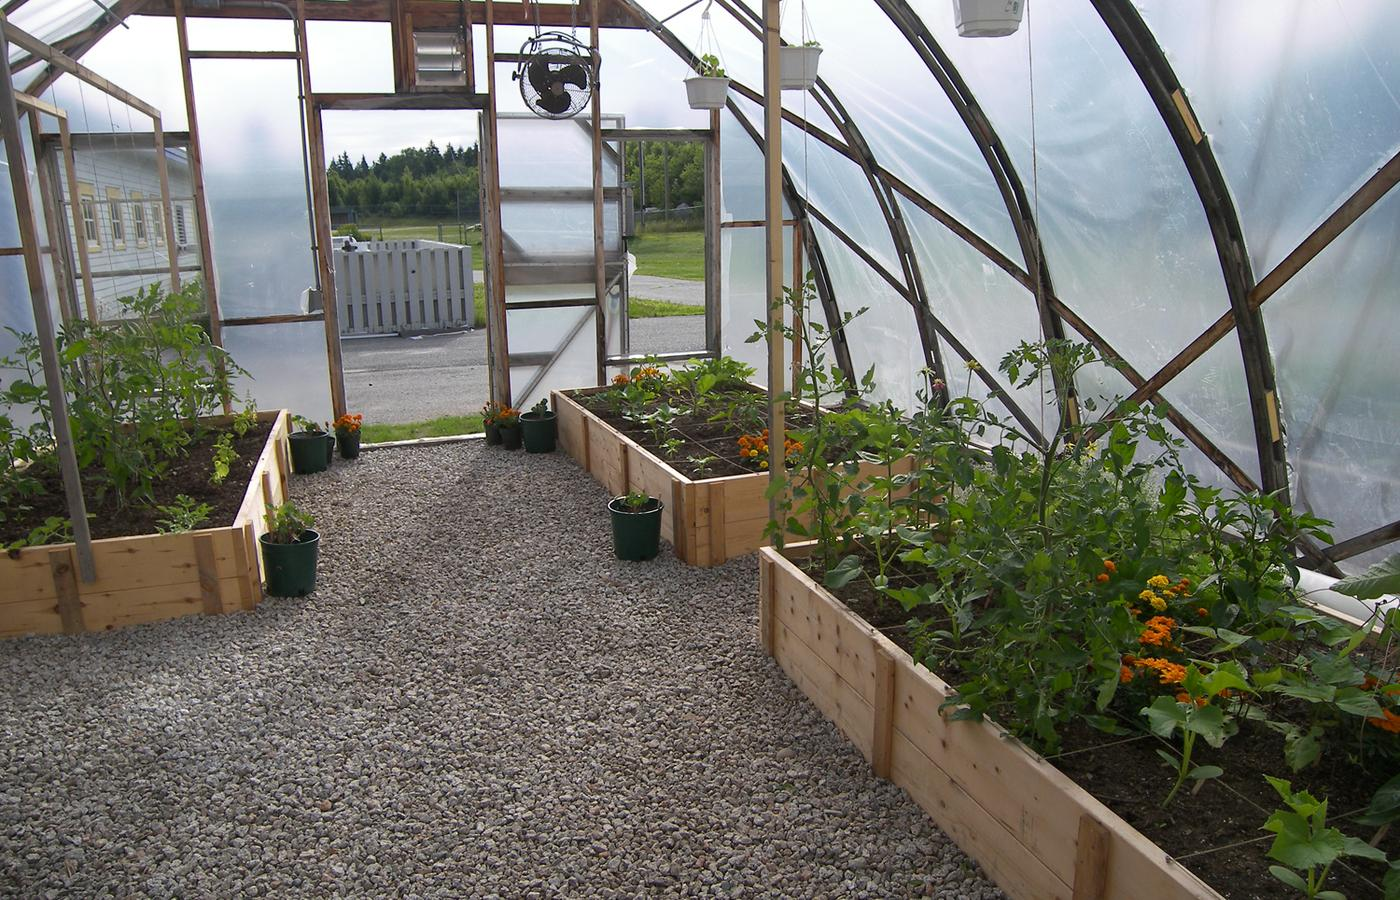 raised beds in the greenhouse photo penobscot bay press